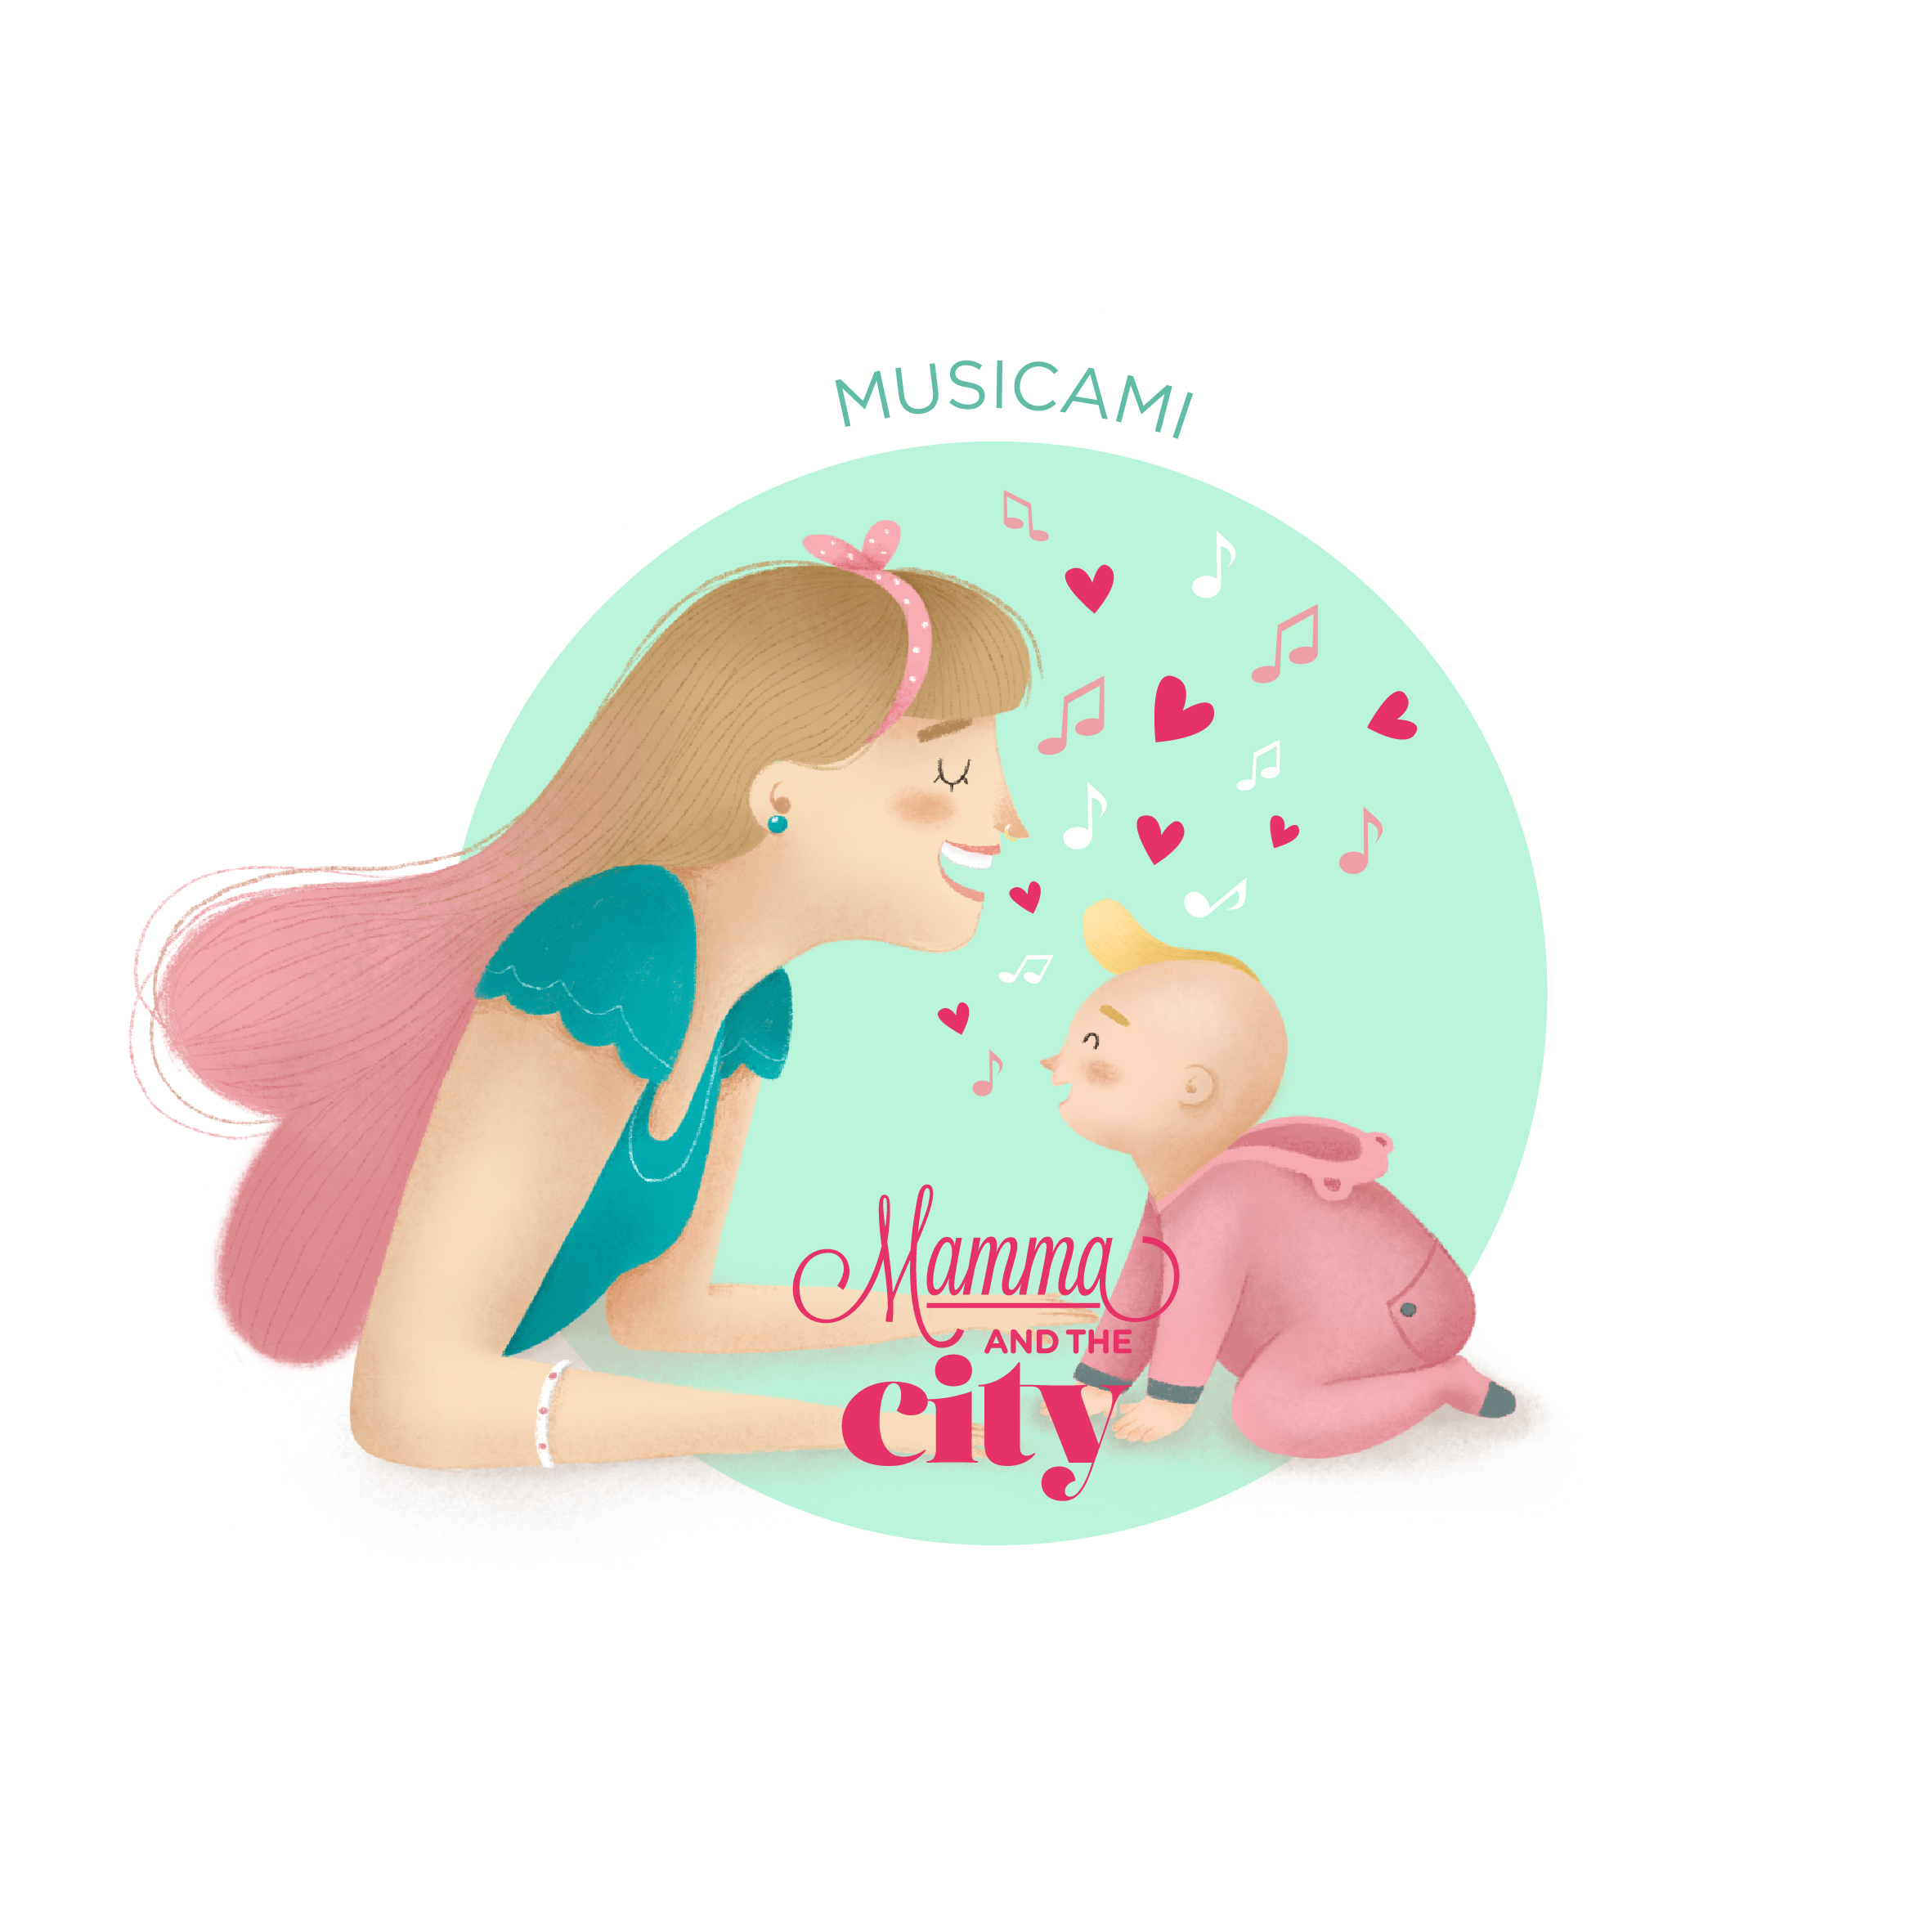 mamma and the city – musicami-09